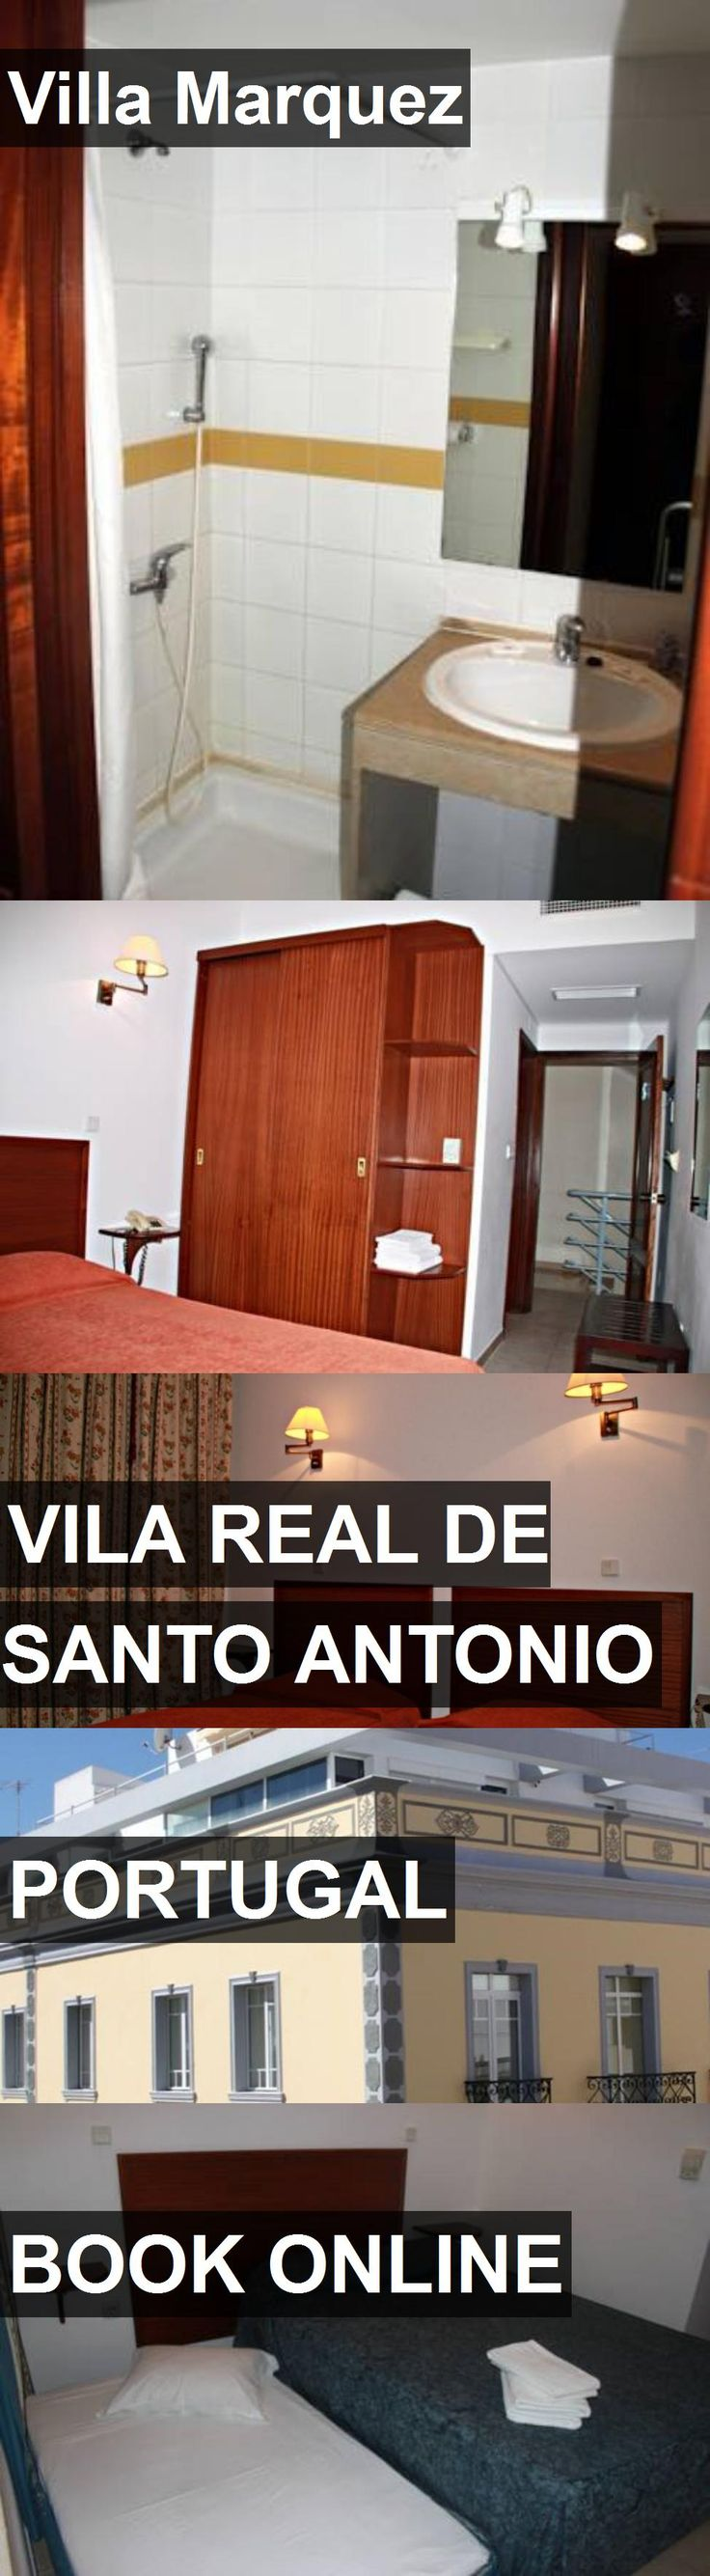 Hotel Villa Marquez in Vila Real de Santo Antonio, Portugal. For more information, photos, reviews and best prices please follow the link. #Portugal #VilaRealdeSantoAntonio #VillaMarquez #hotel #travel #vacation